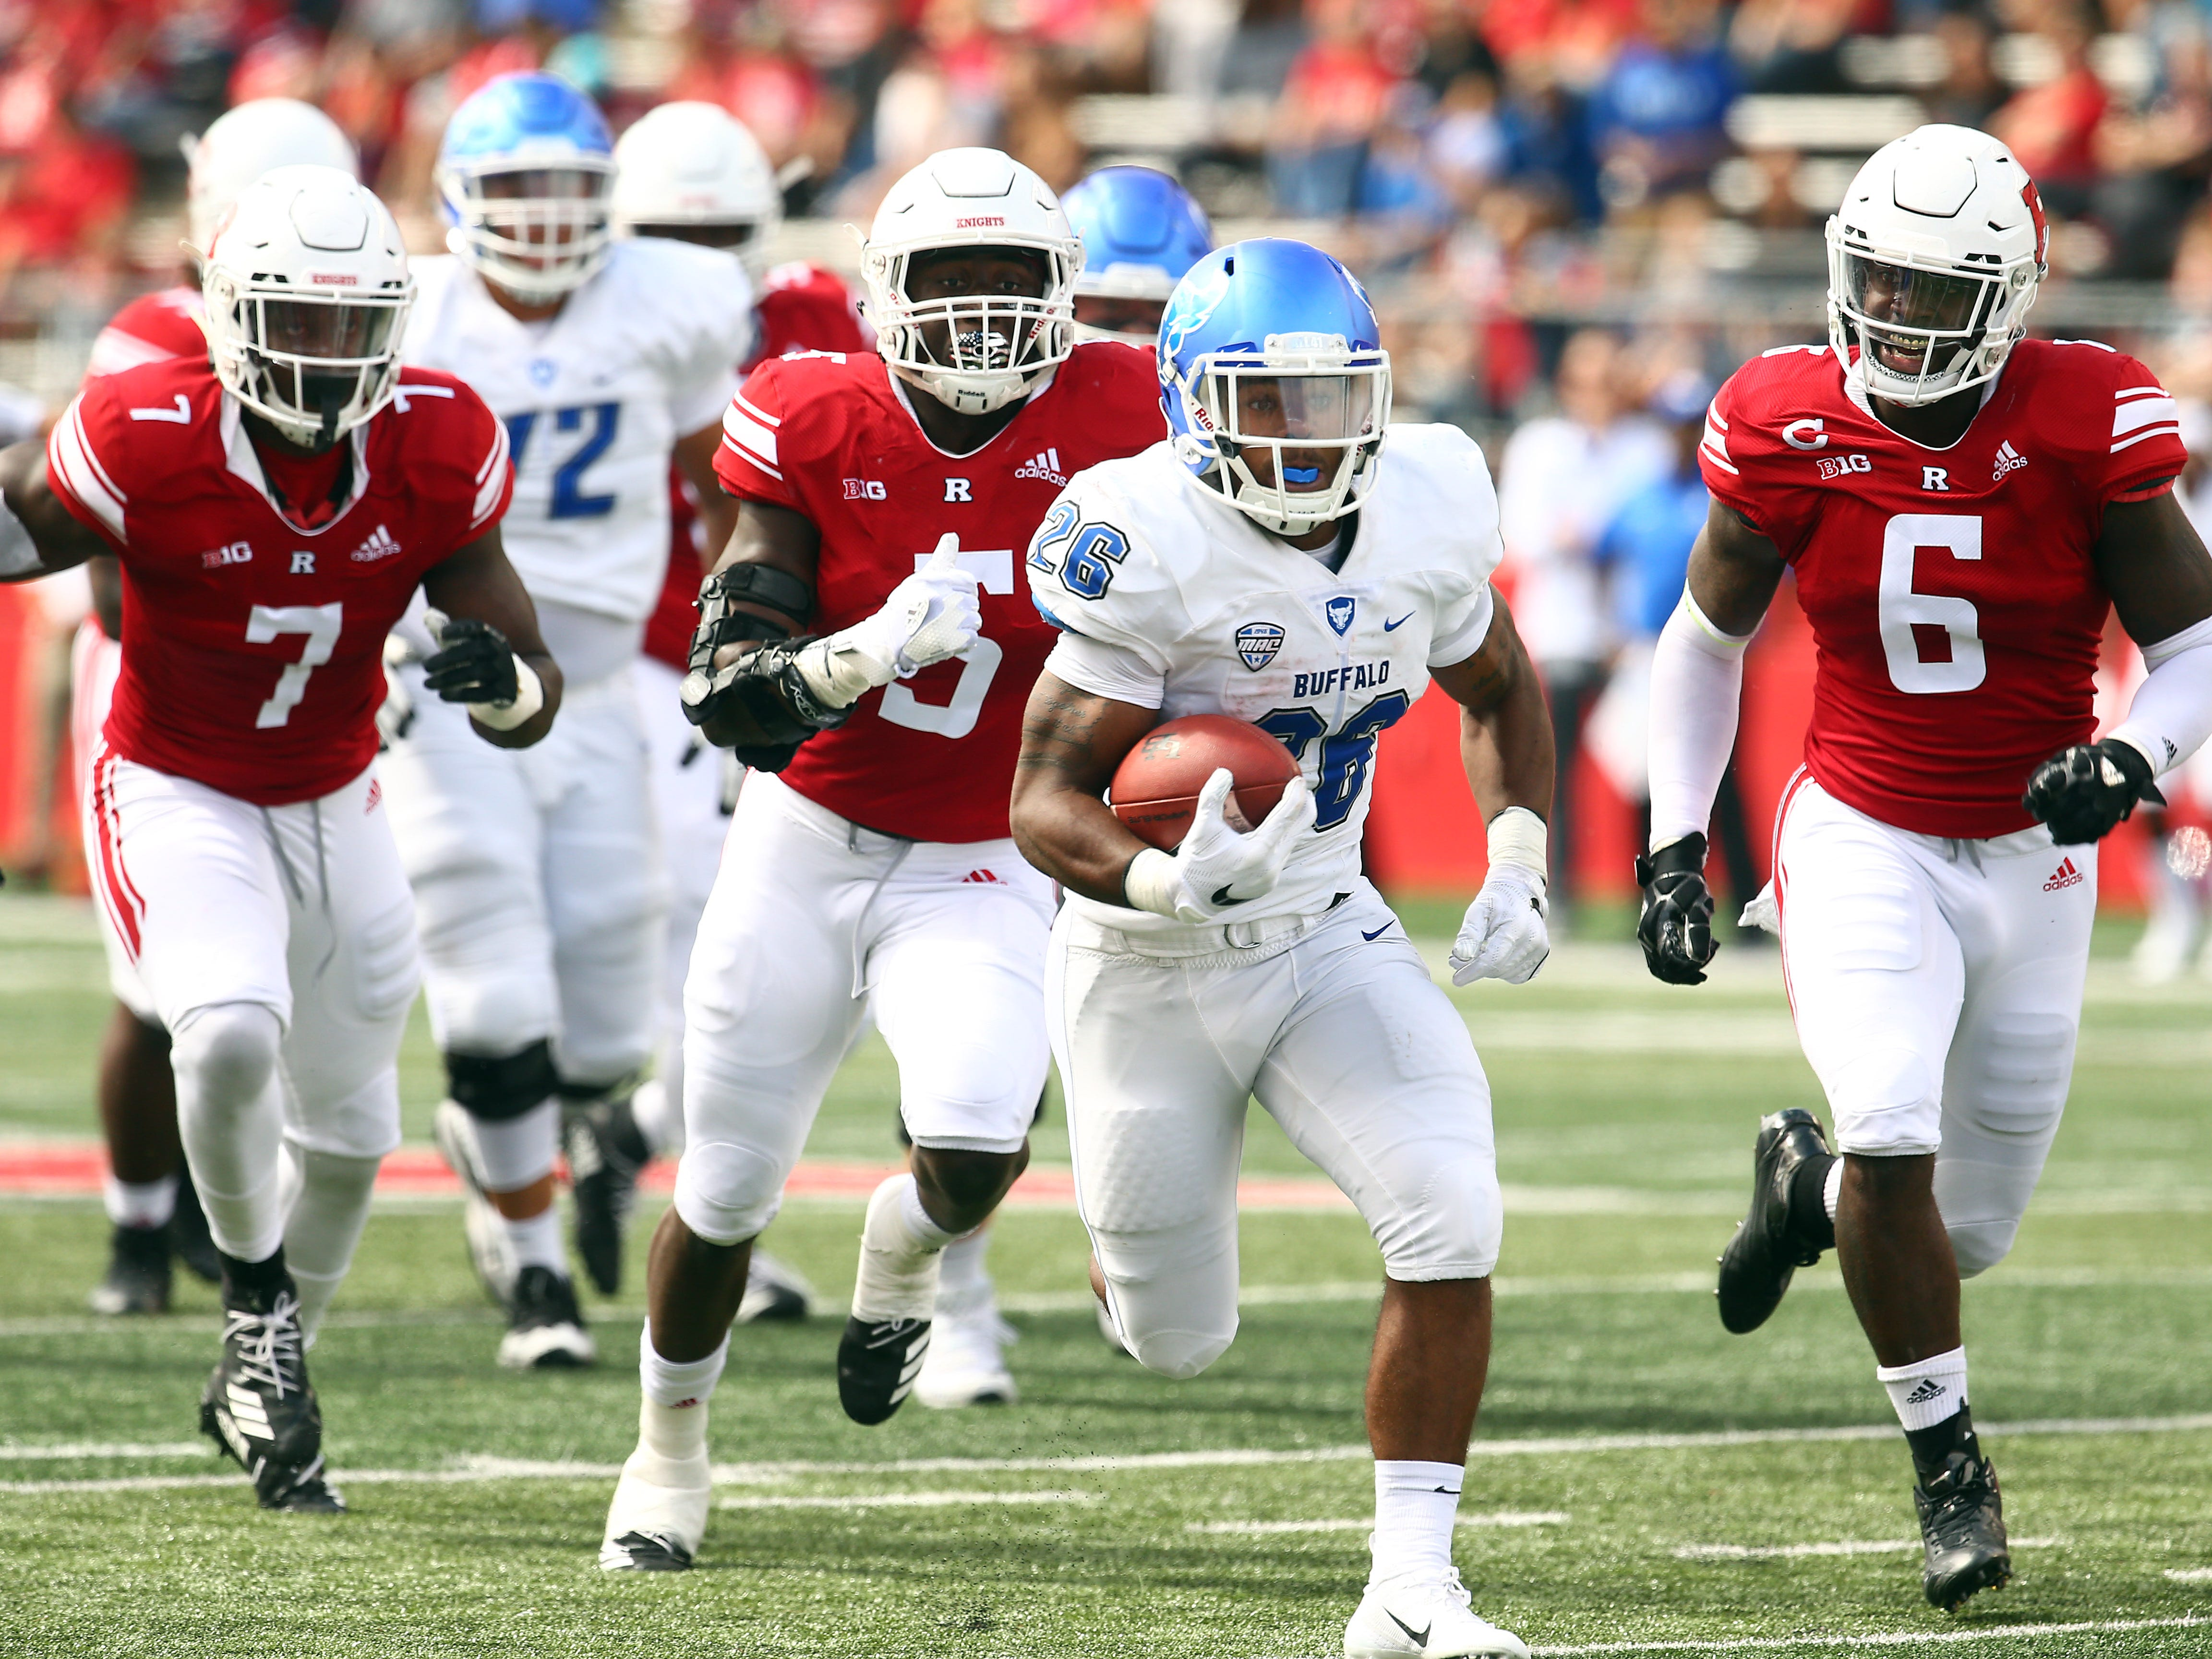 Buffalo Bulls running back Jaret Patterson is chased by three Rutgers Scarlet Knights on his way to a first half touchdown at HighPoint.com Stadium in Piscataway. September 22, 2018, Piscataway, NJ